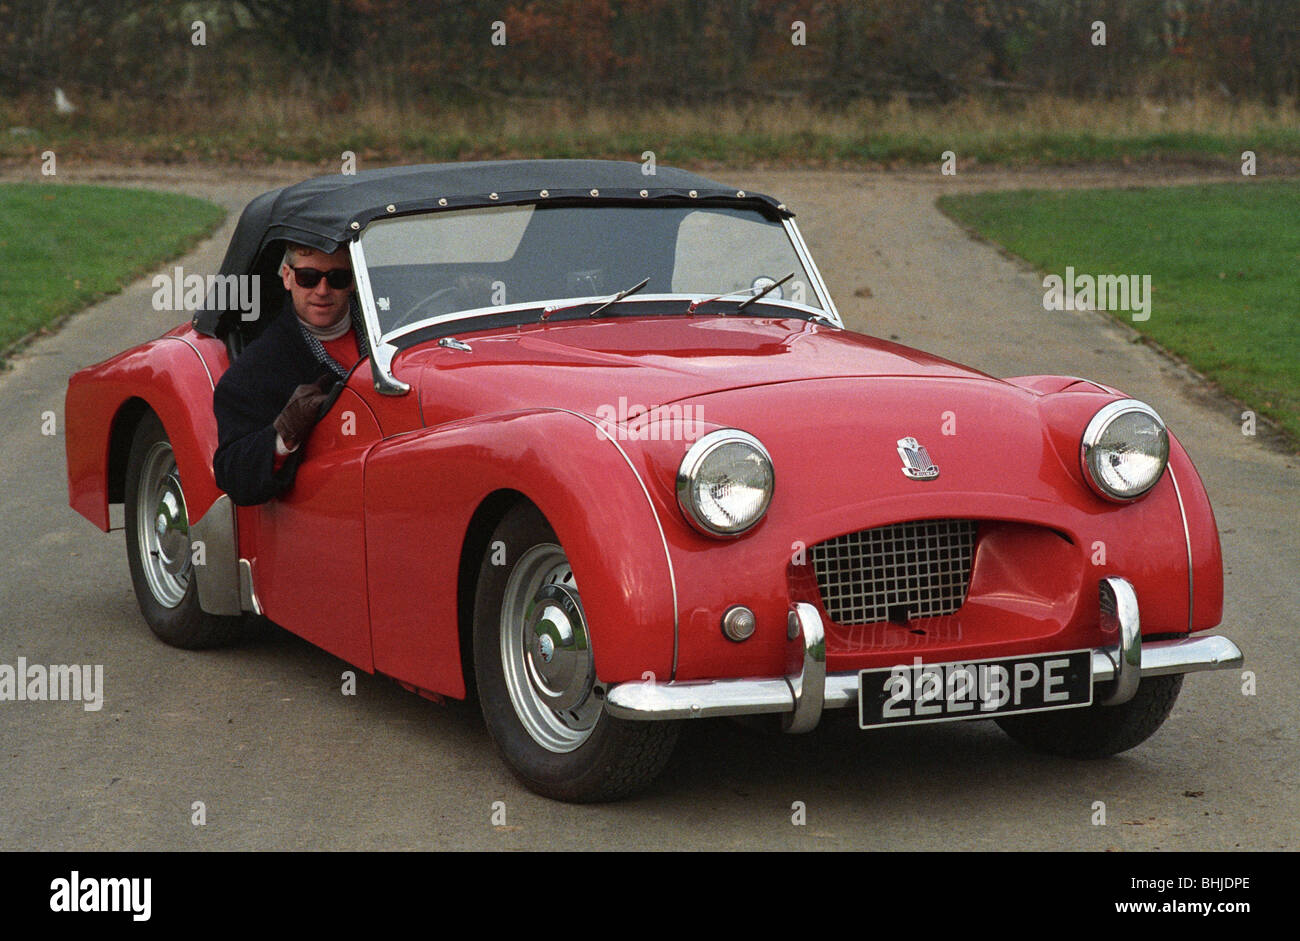 triumph tr2 red sports car classic british car male driver. Black Bedroom Furniture Sets. Home Design Ideas